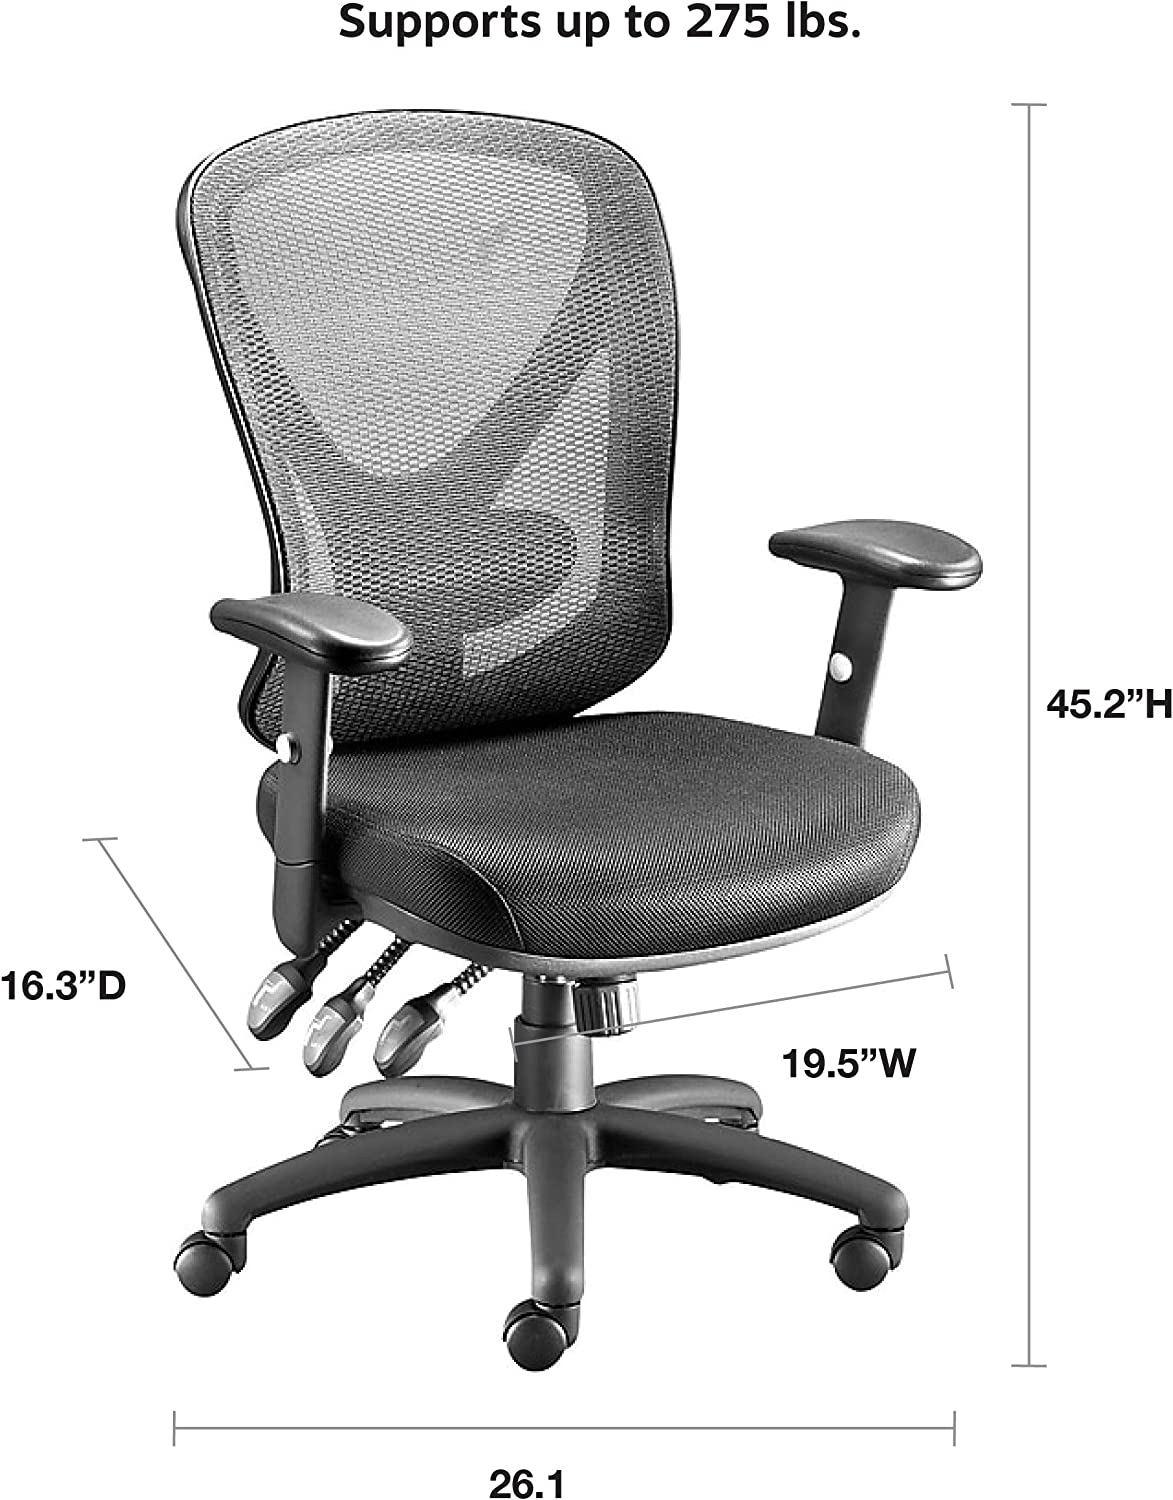 Amazon.com: STAPLES Carder Mesh Office Chair (Black, Sold as 39